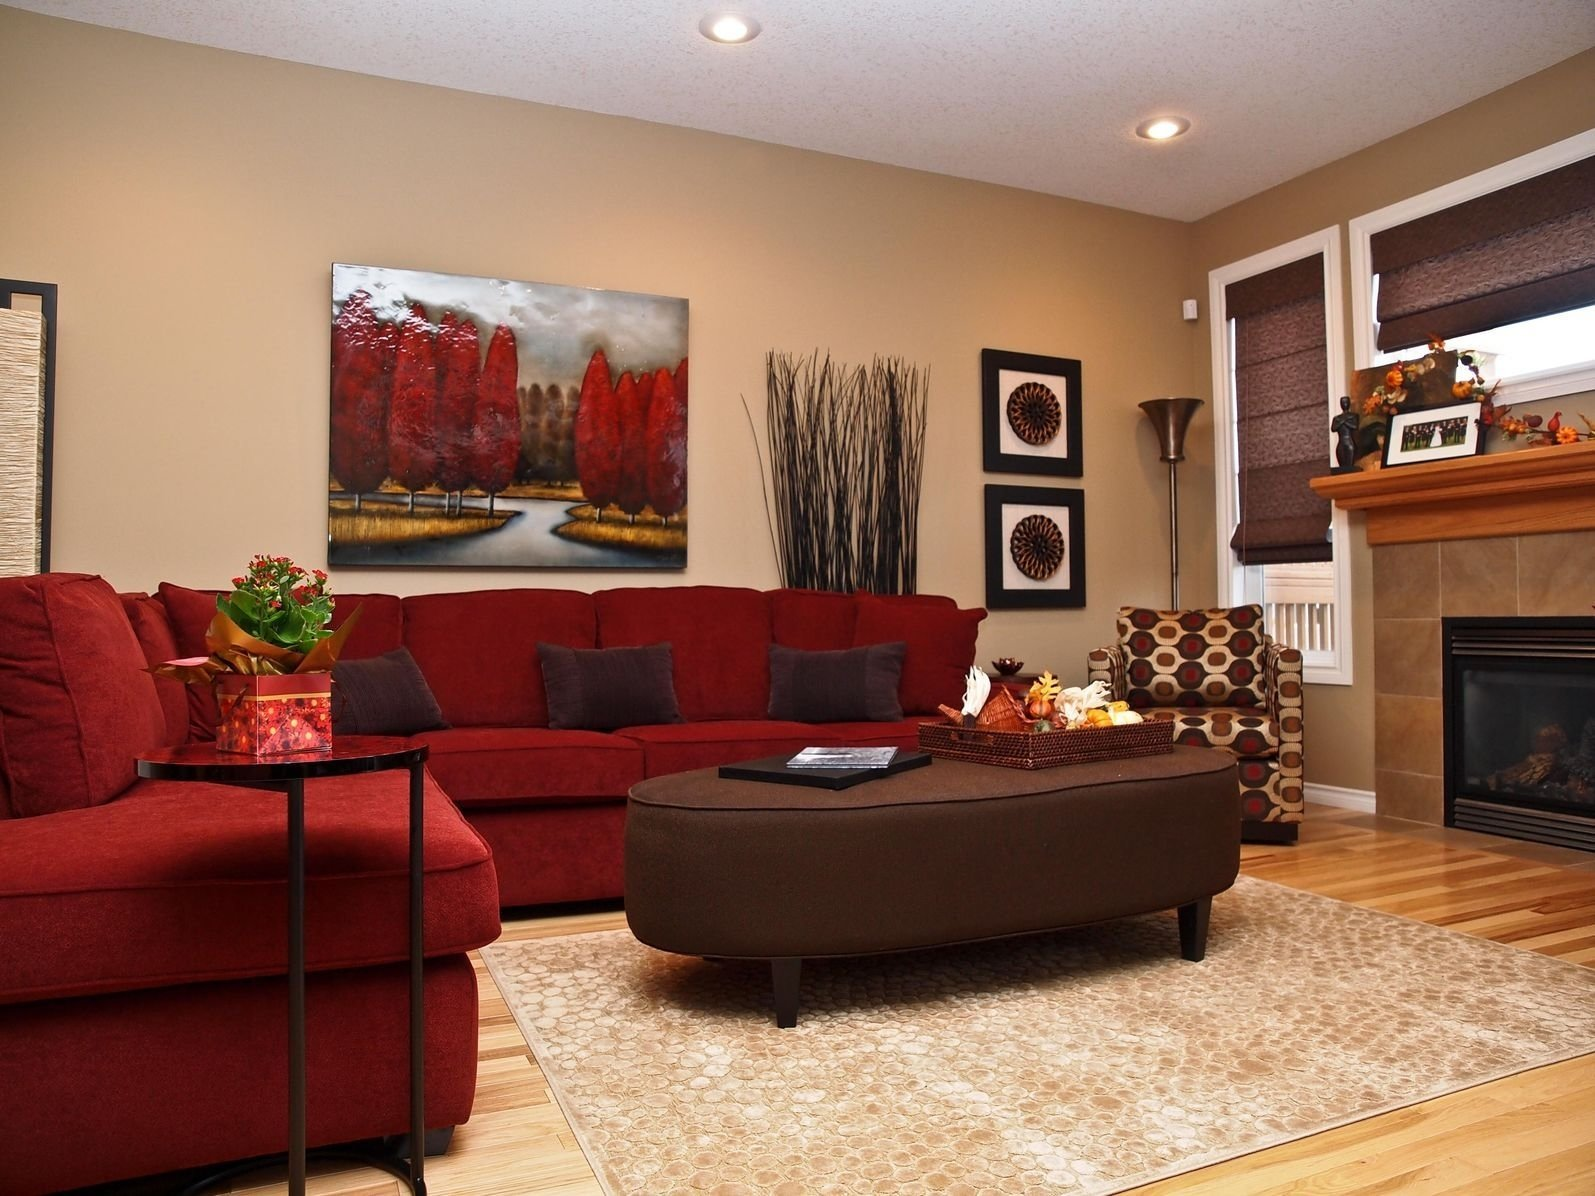 10 Best Red And Brown Living Room Ideas 50 beautiful living rooms with ottoman coffee tables oval ottoman 2020